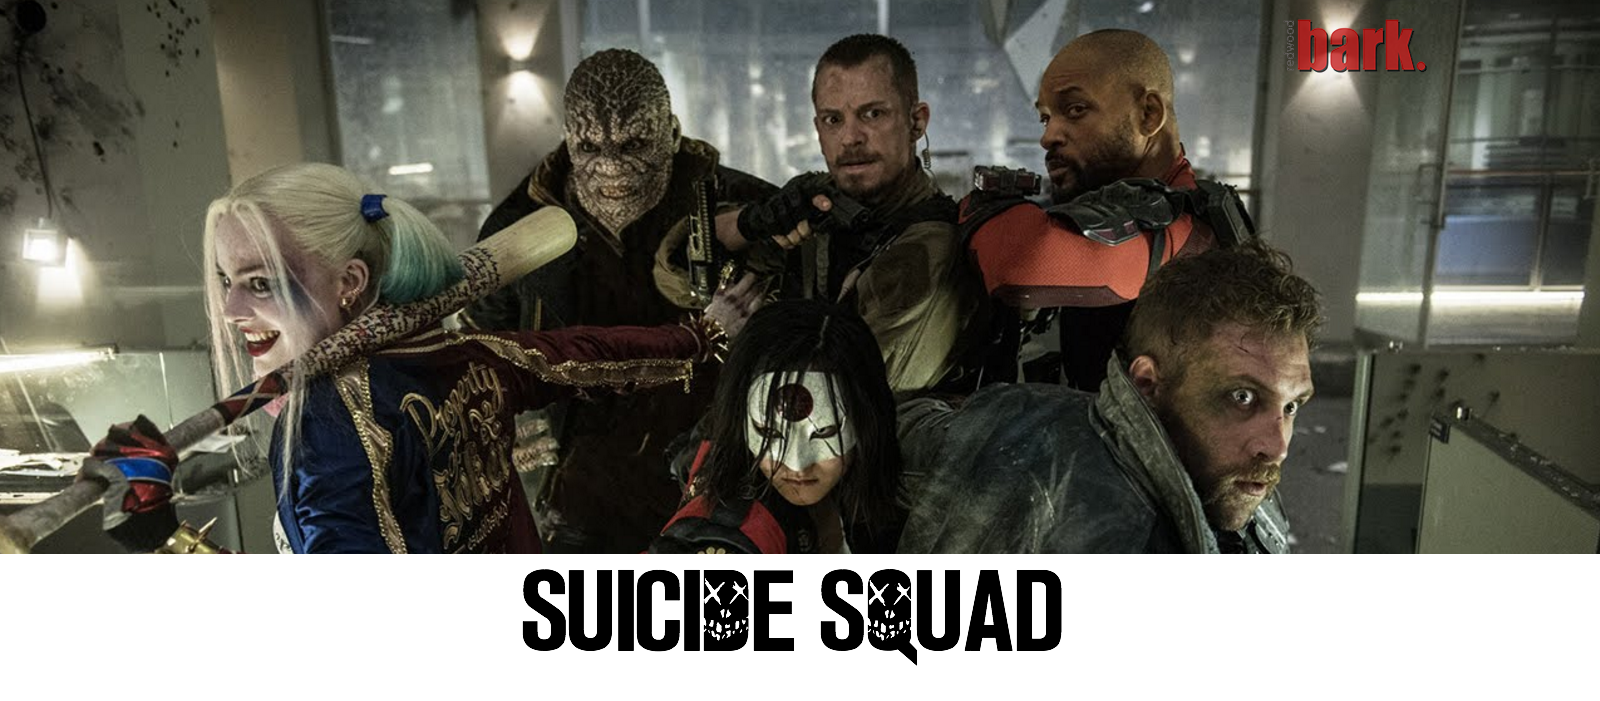 'Suicide Squad': the most fun, least interesting movie you'll ever watch.